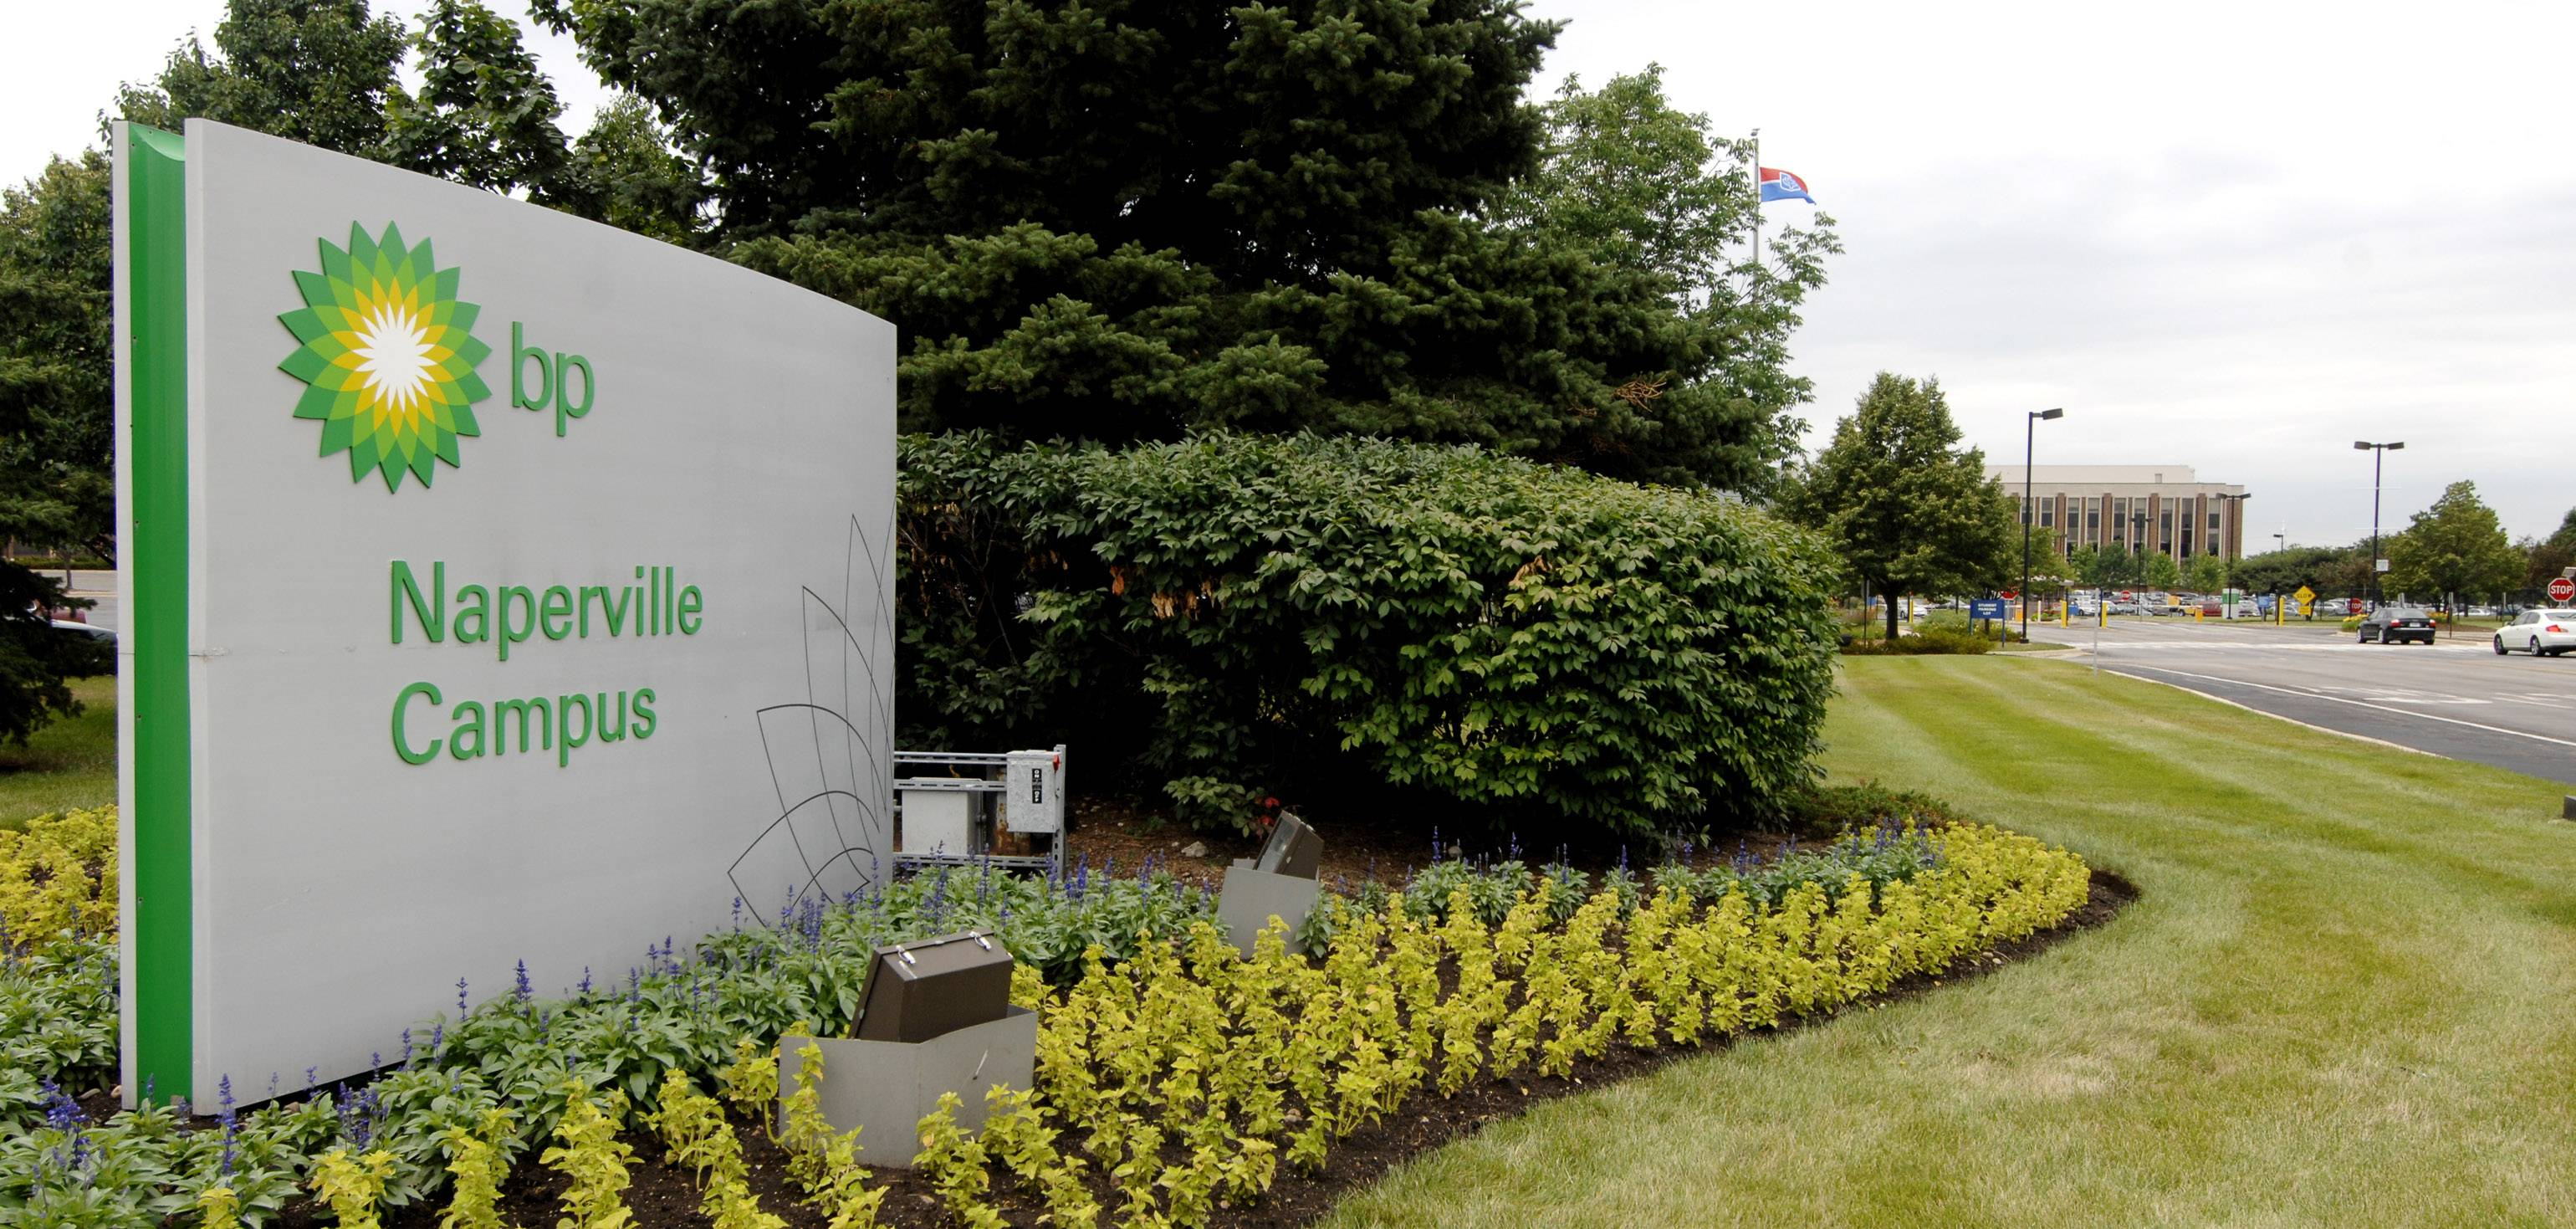 BP to move 200 workers from Naperville to Chicago